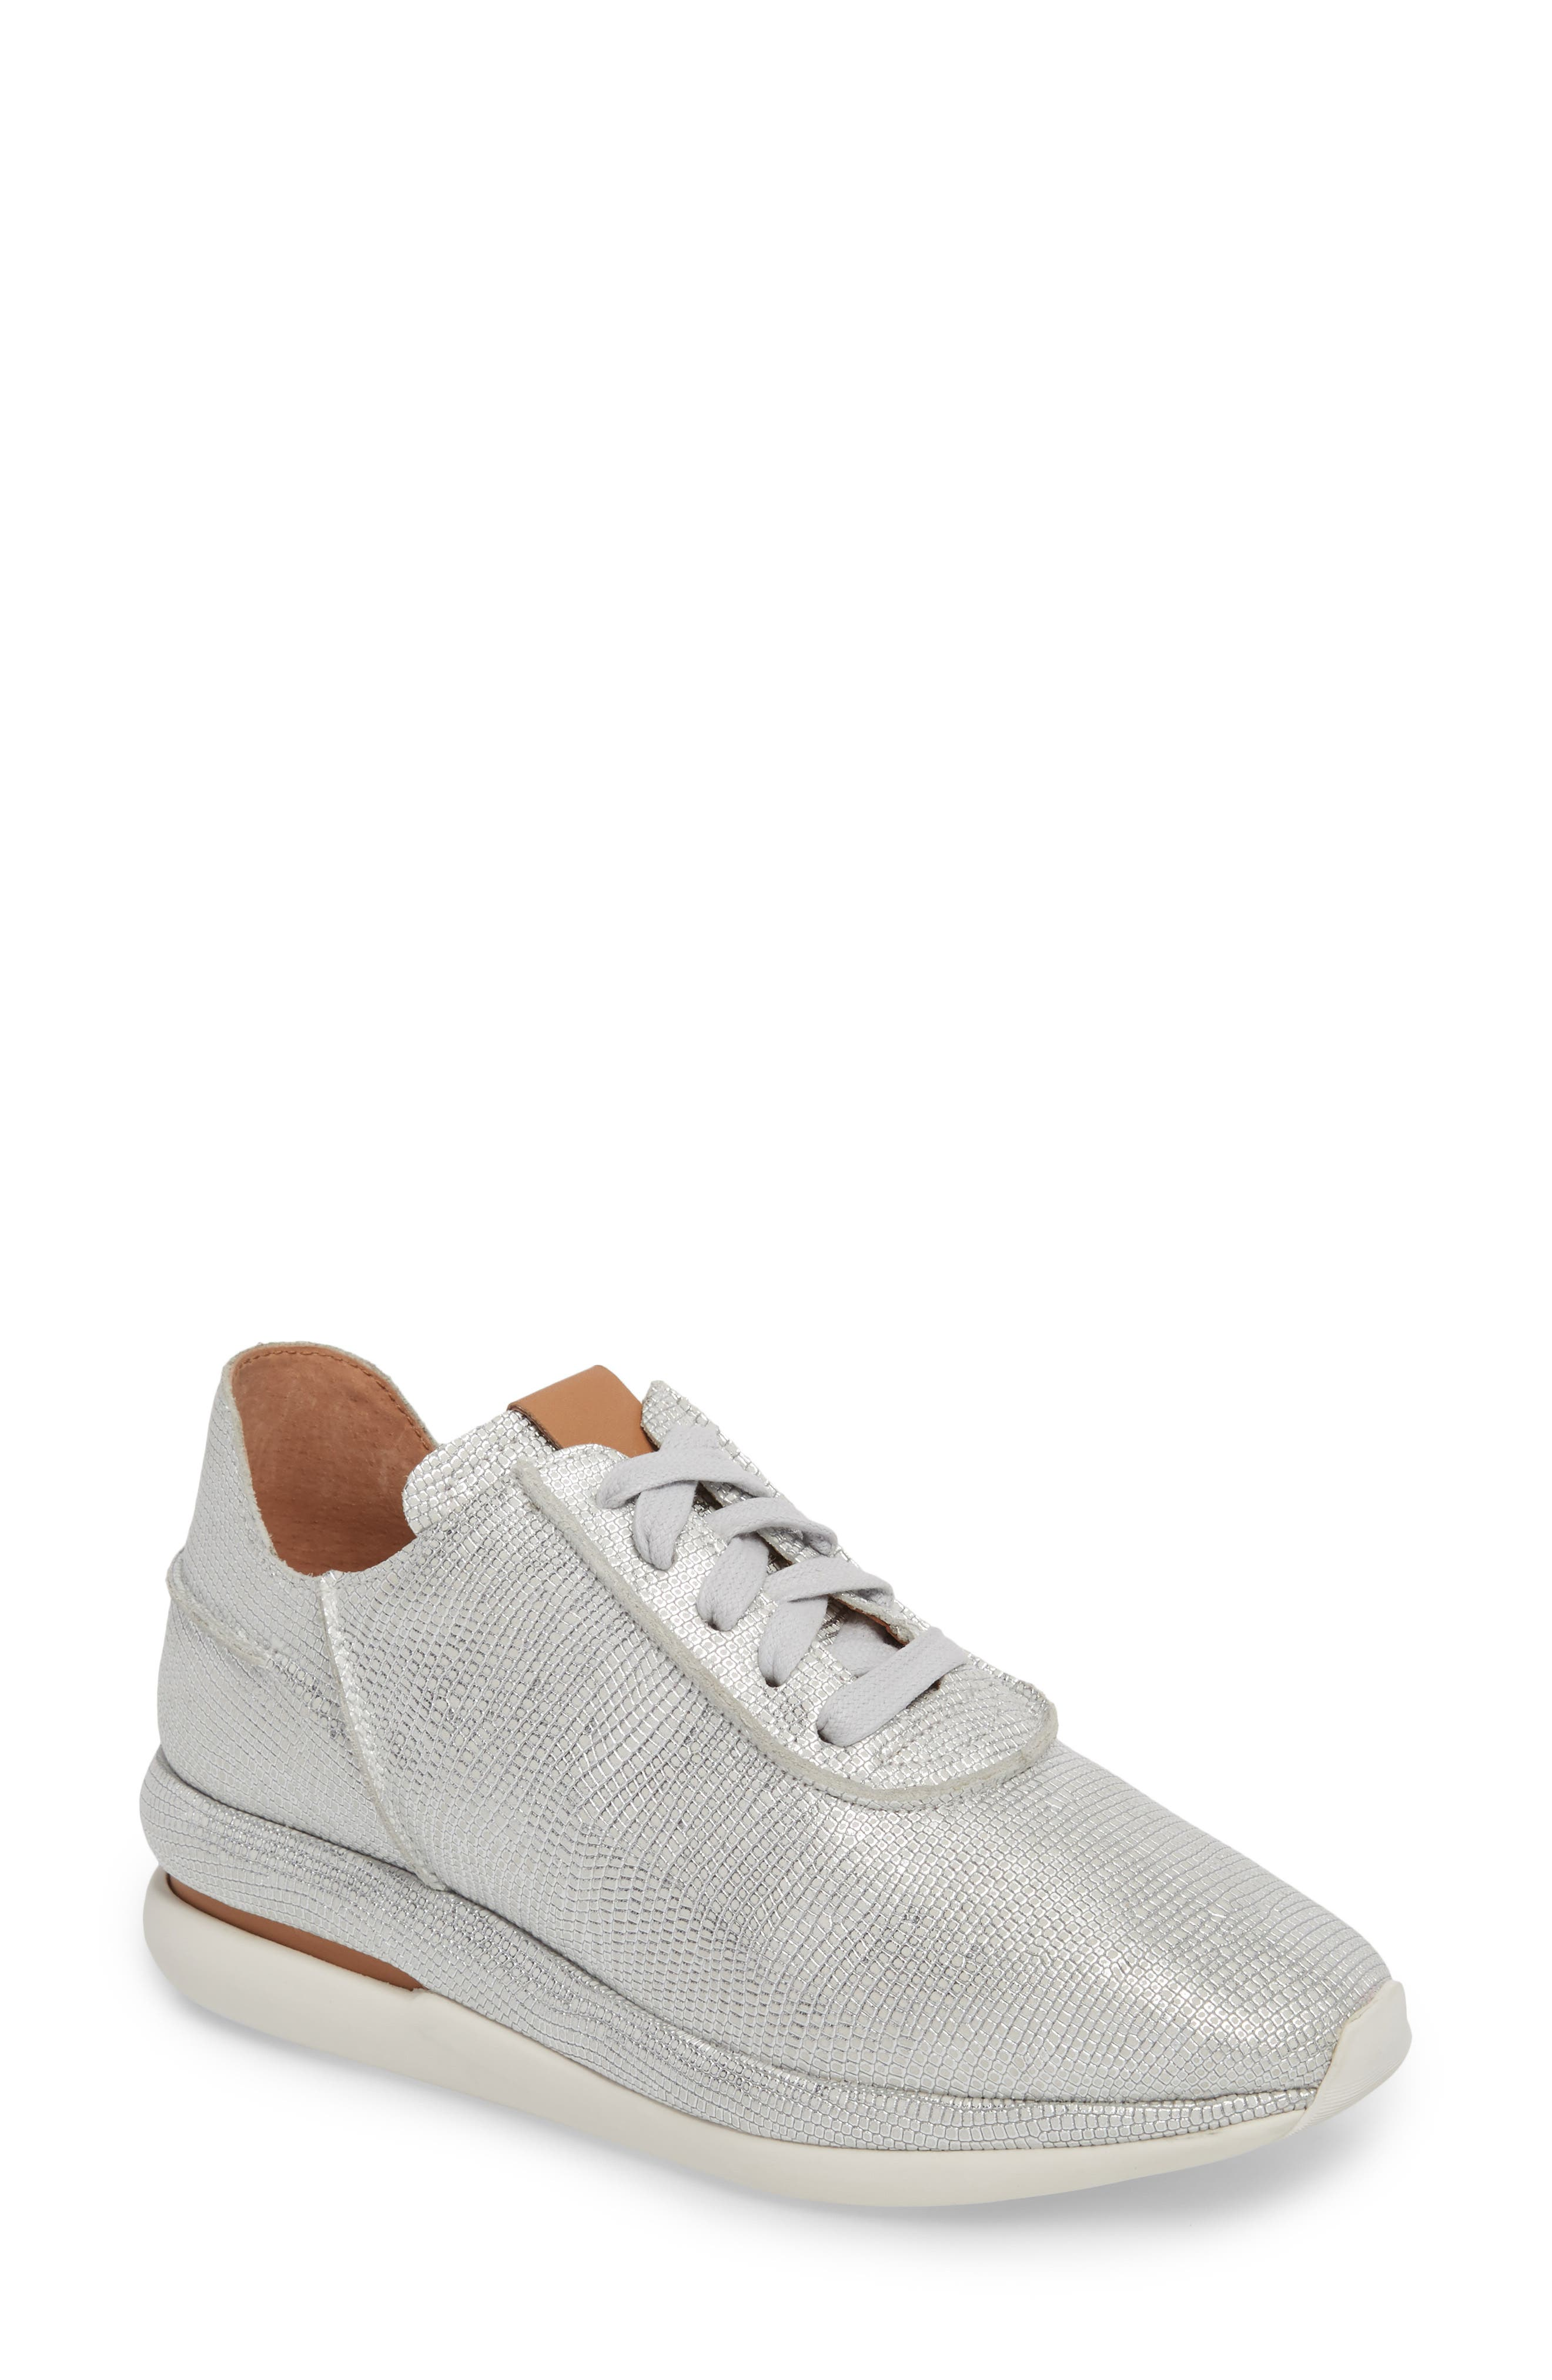 GENTLE SOULS BY KENNETH COLE Raina Sneaker, Main, color, WHITE/ SILVER LEATHER